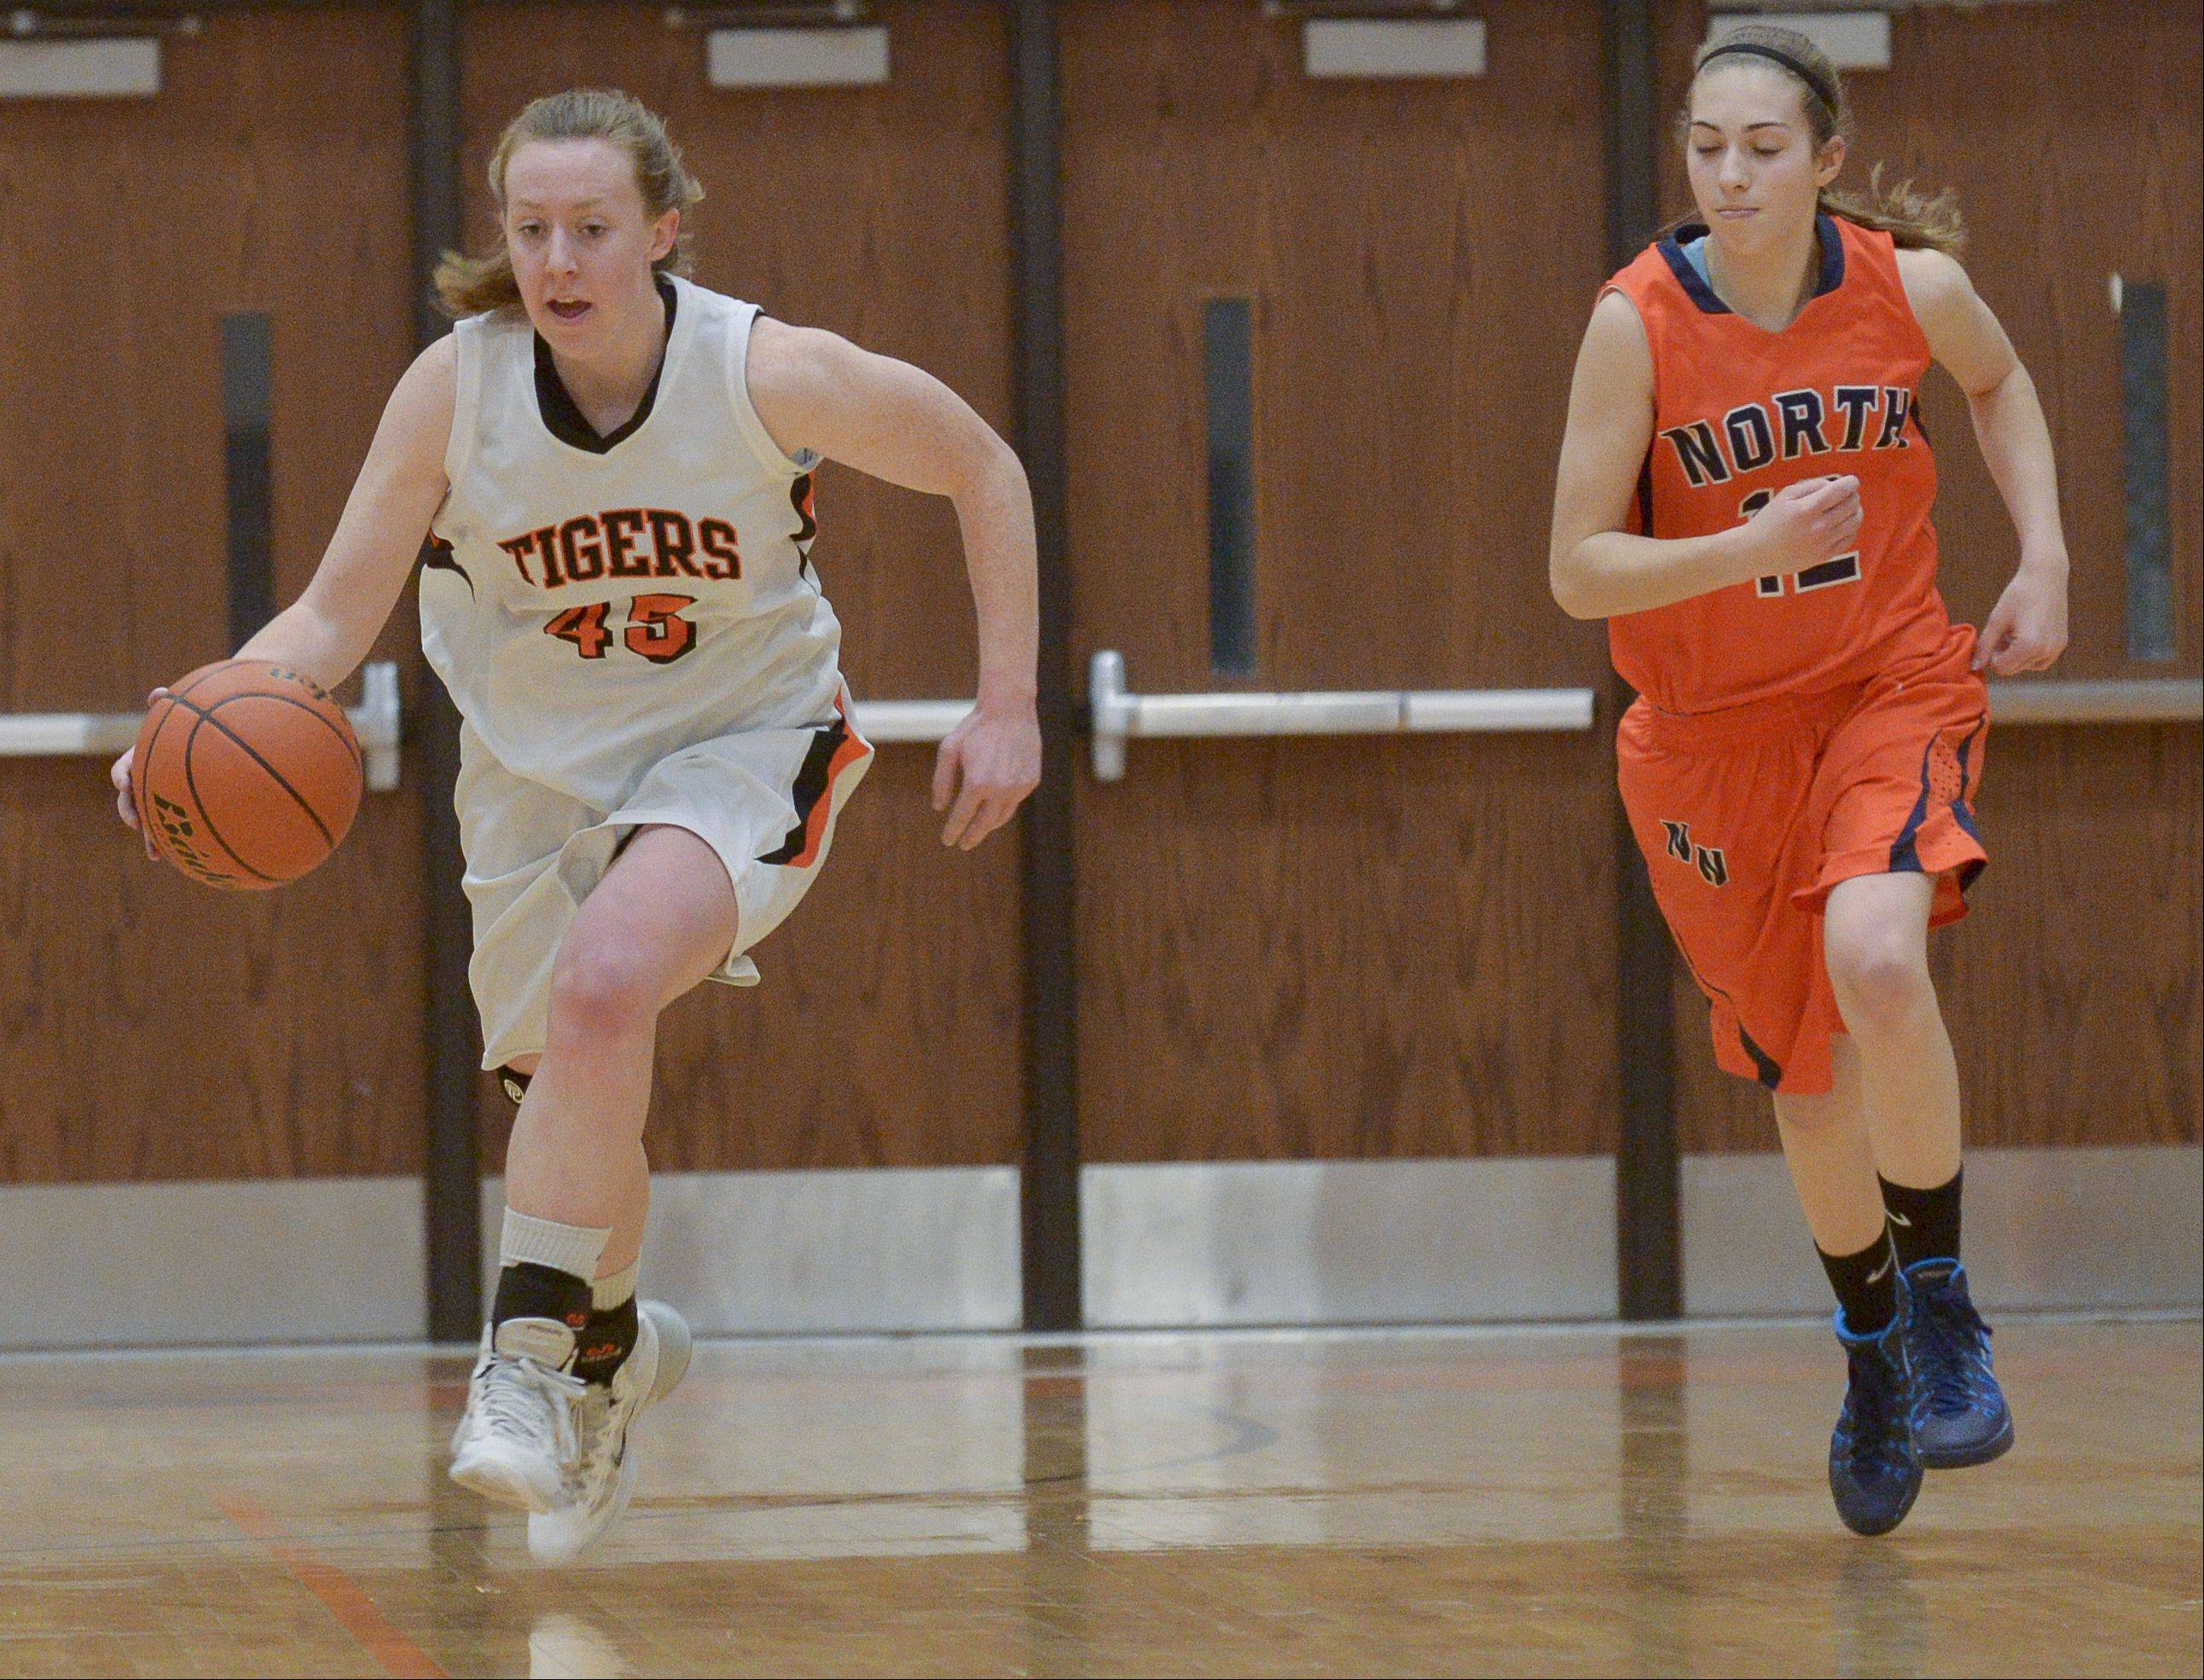 Wheaton Warrenville South's Meghan Waldron drives the ball down the court.